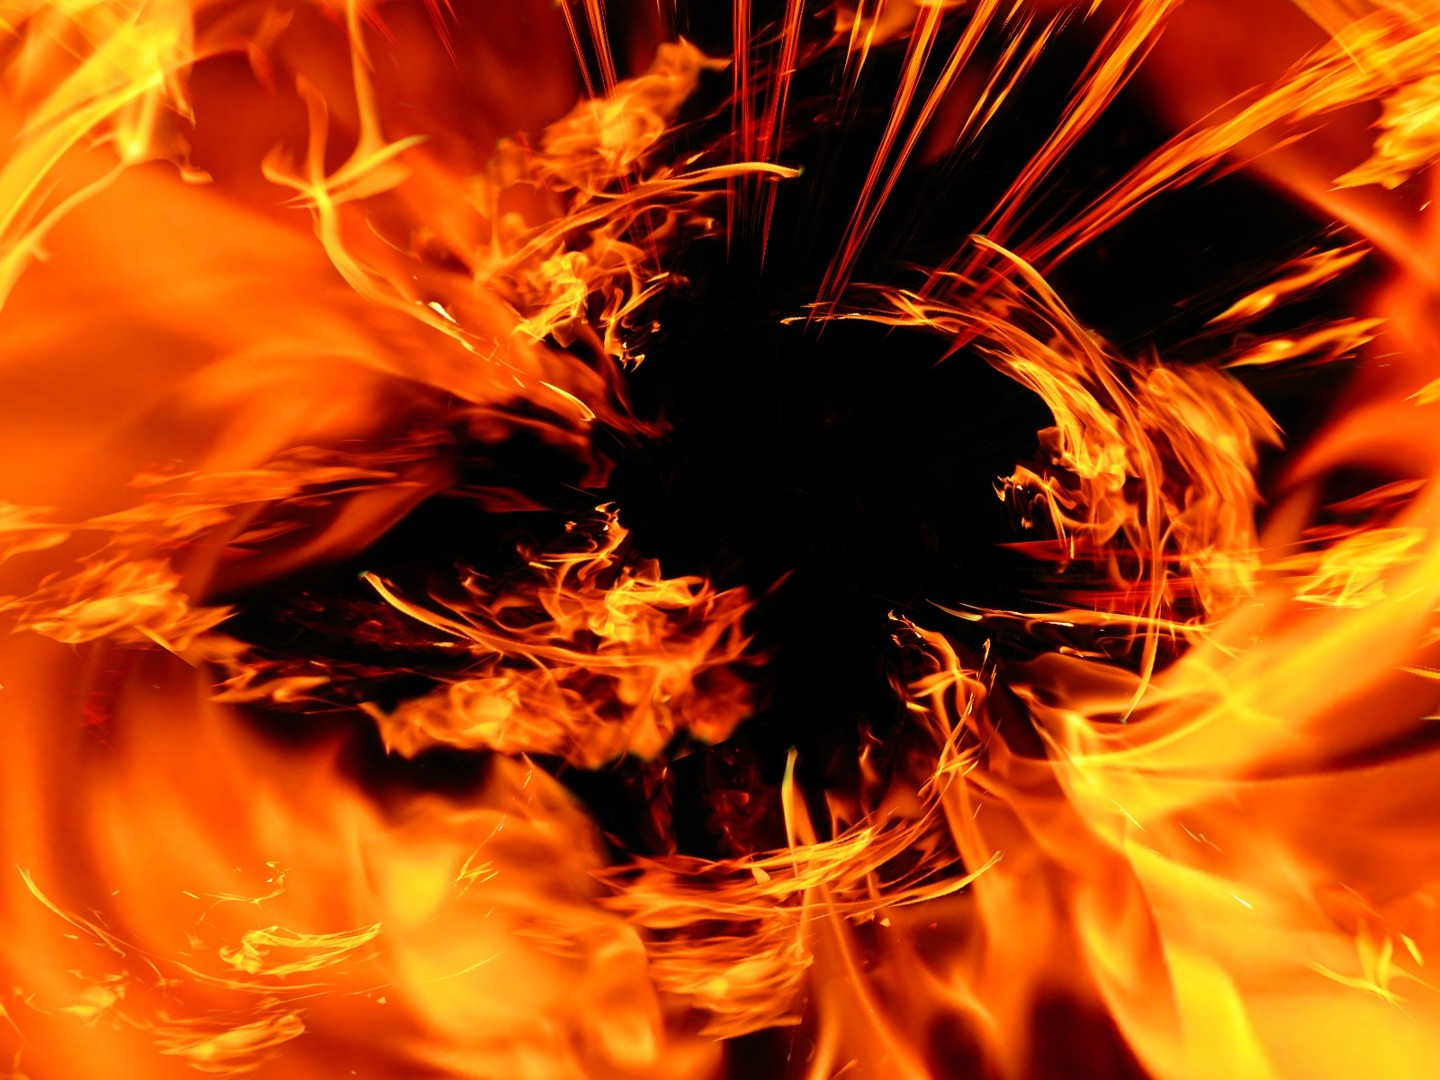 Cool fire Wallpapers   500 Collection HD Wallpaper 1440x1080